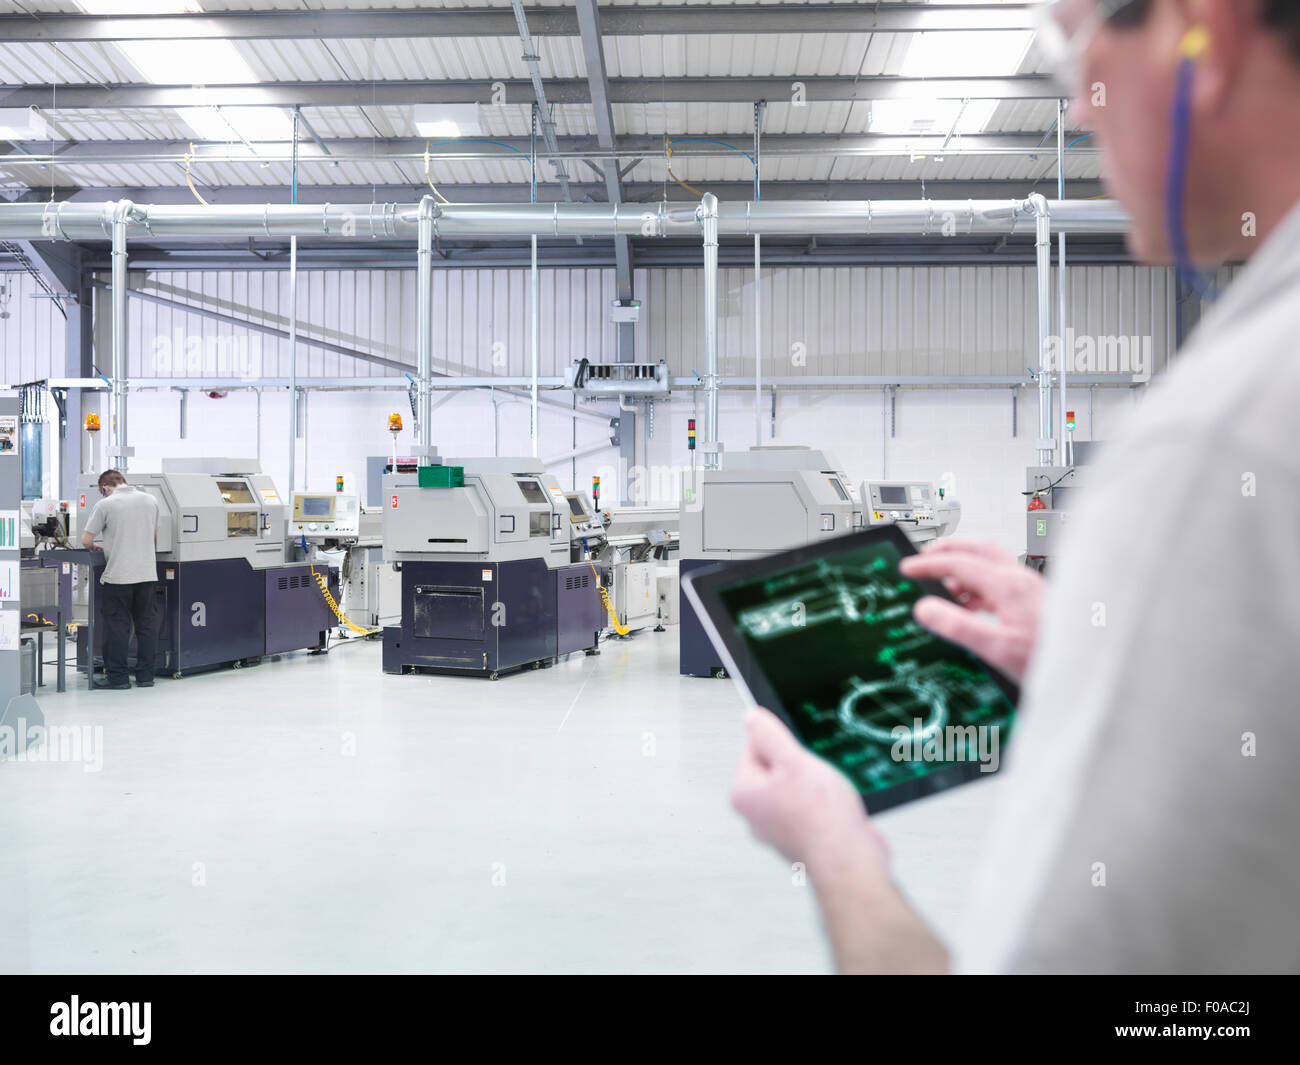 Engineer using digital tablet by production line in factory, close up - Stock Image